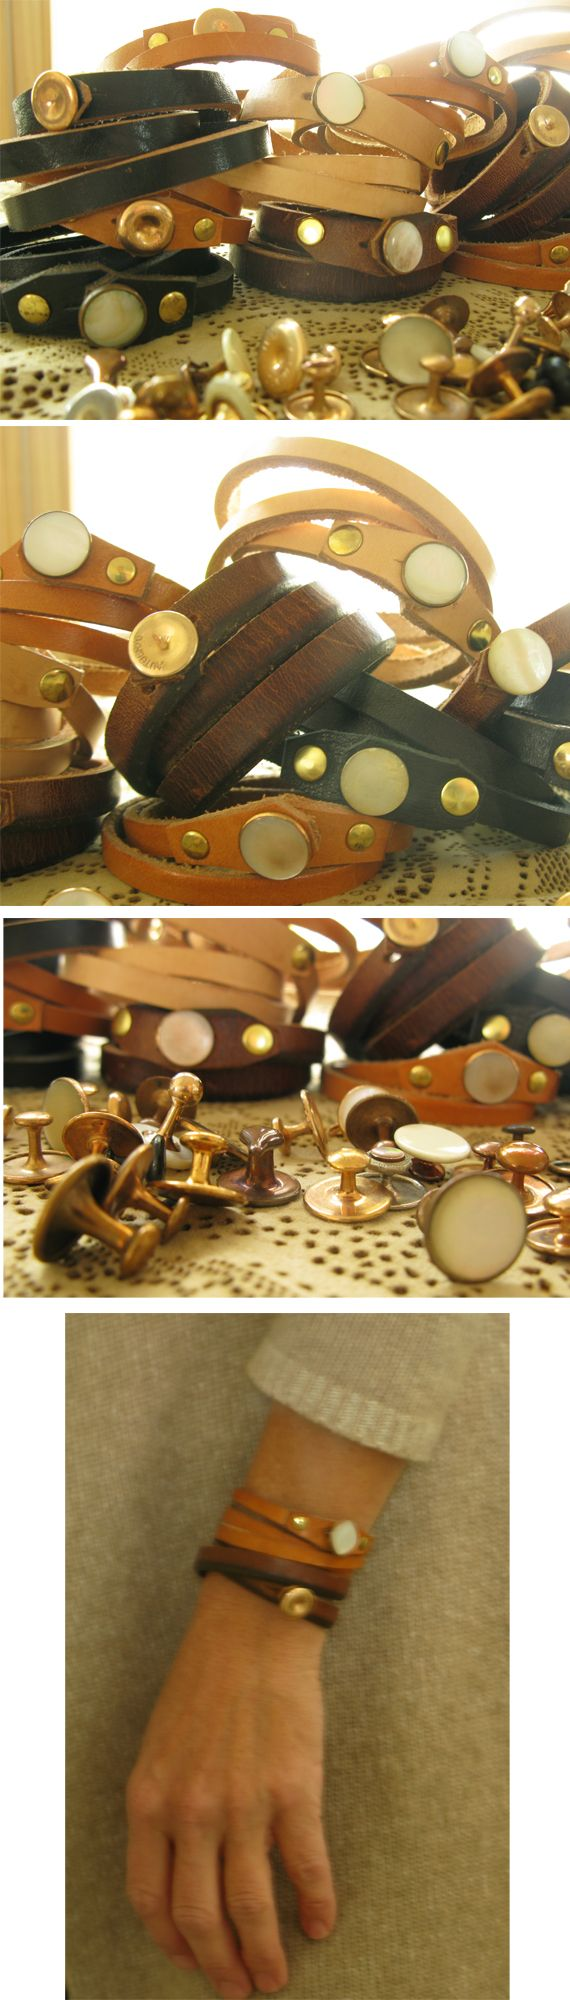 How to make your own leather bracelets